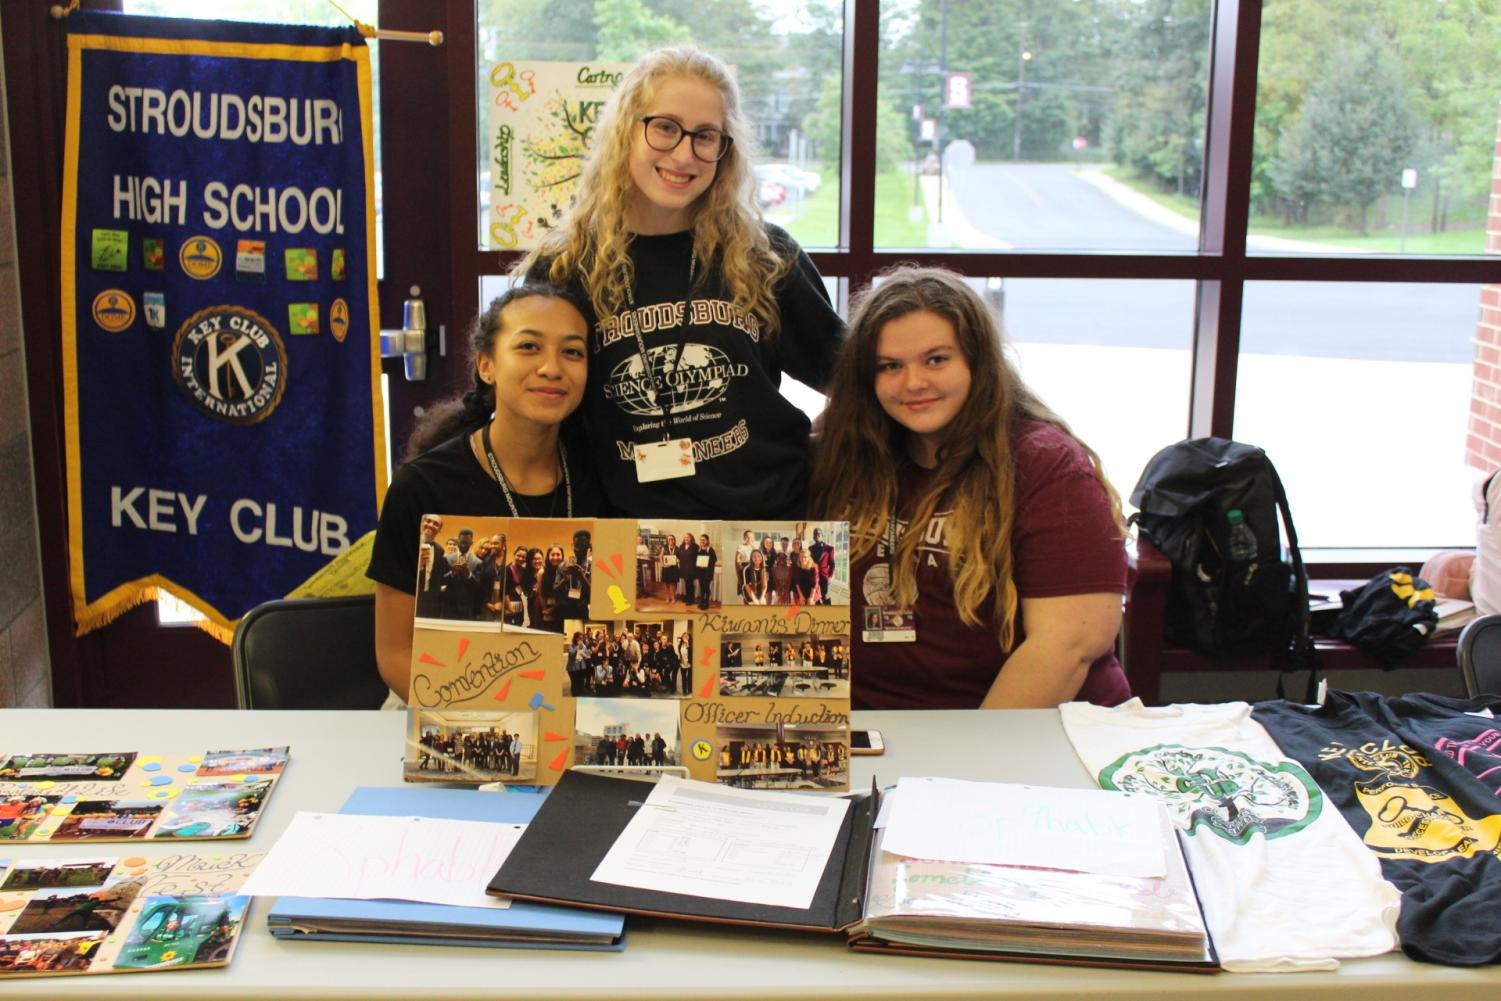 Key Club takes on the activities fair